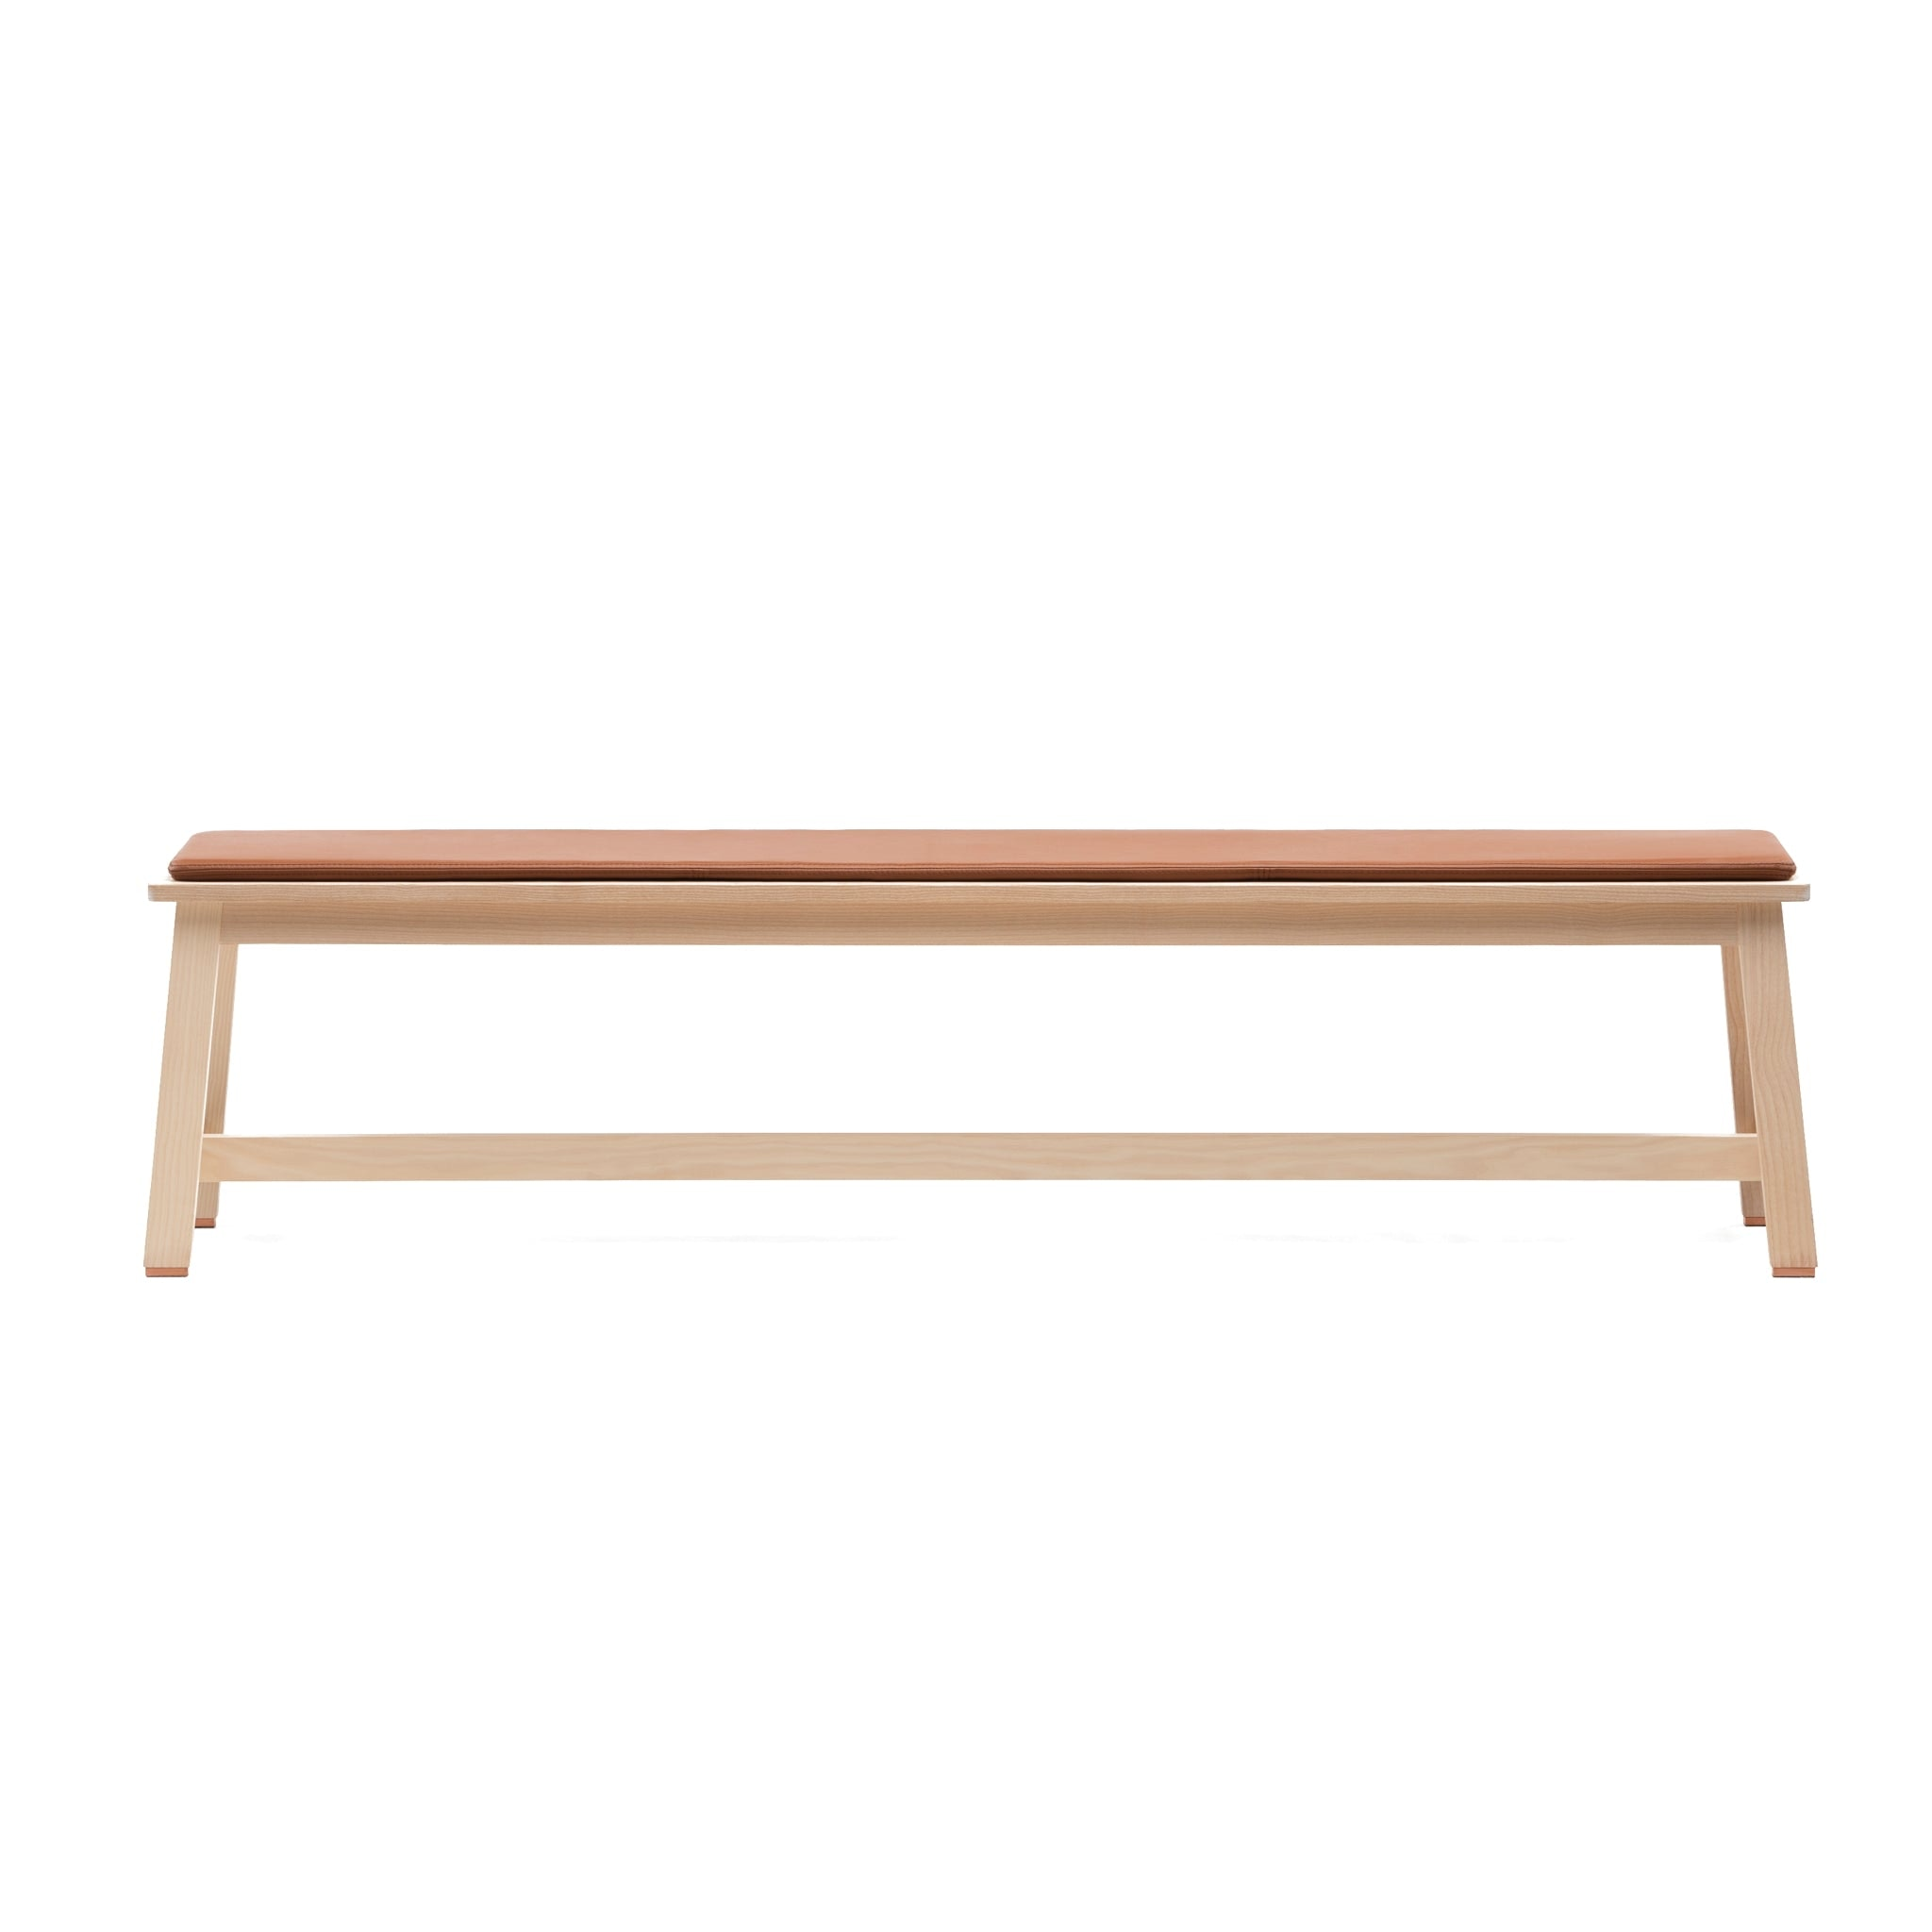 443 Bench by Ilse Crawford